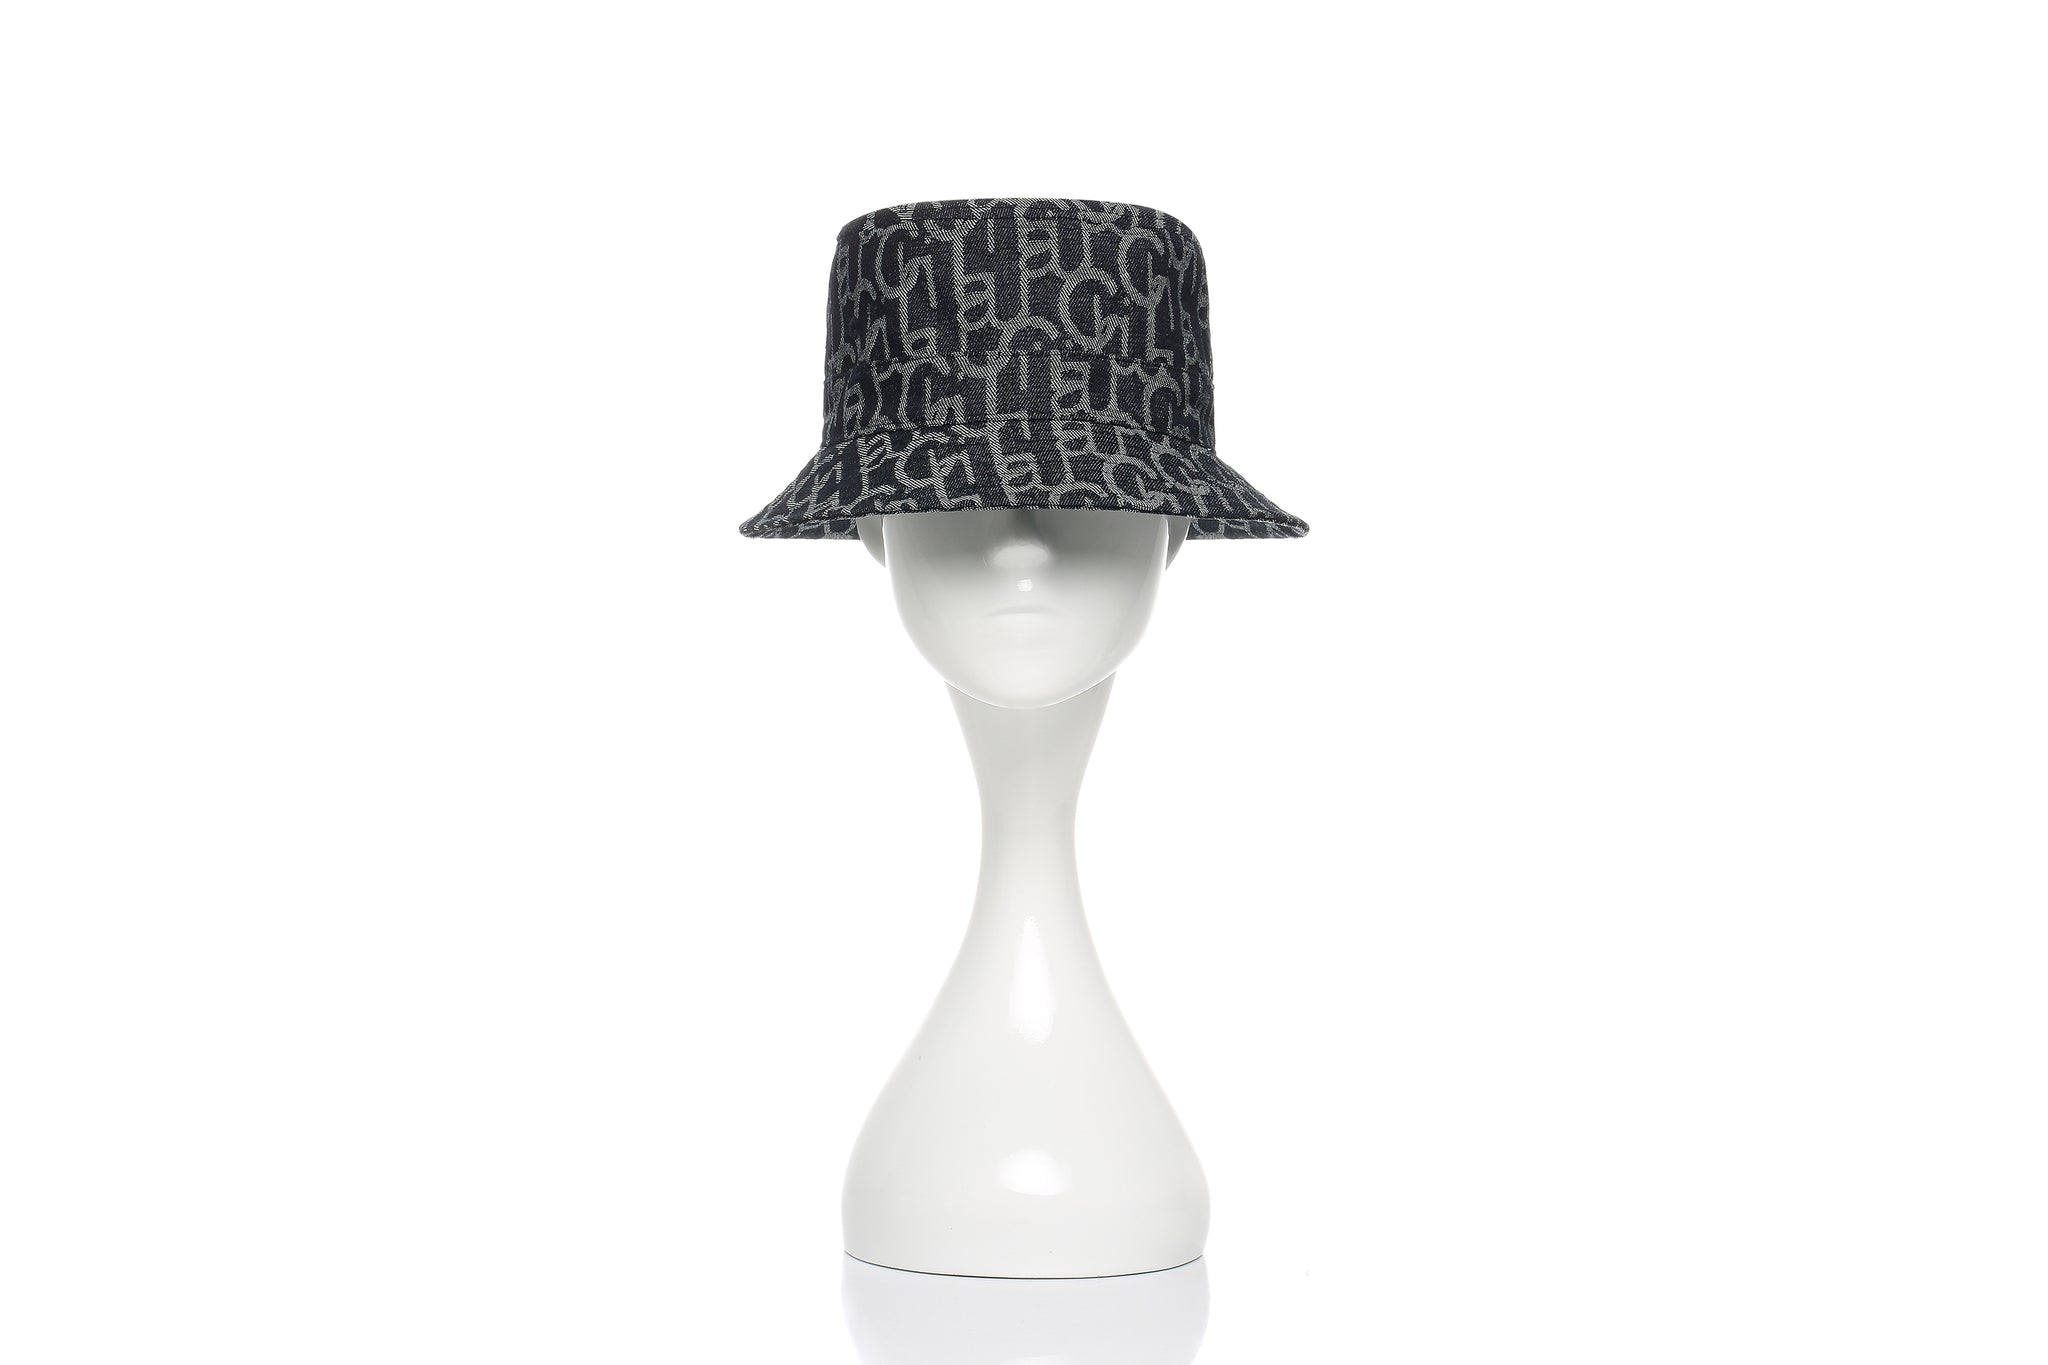 Chichi Laulau Jacquard Bucket Hat, Small Brim, Navy